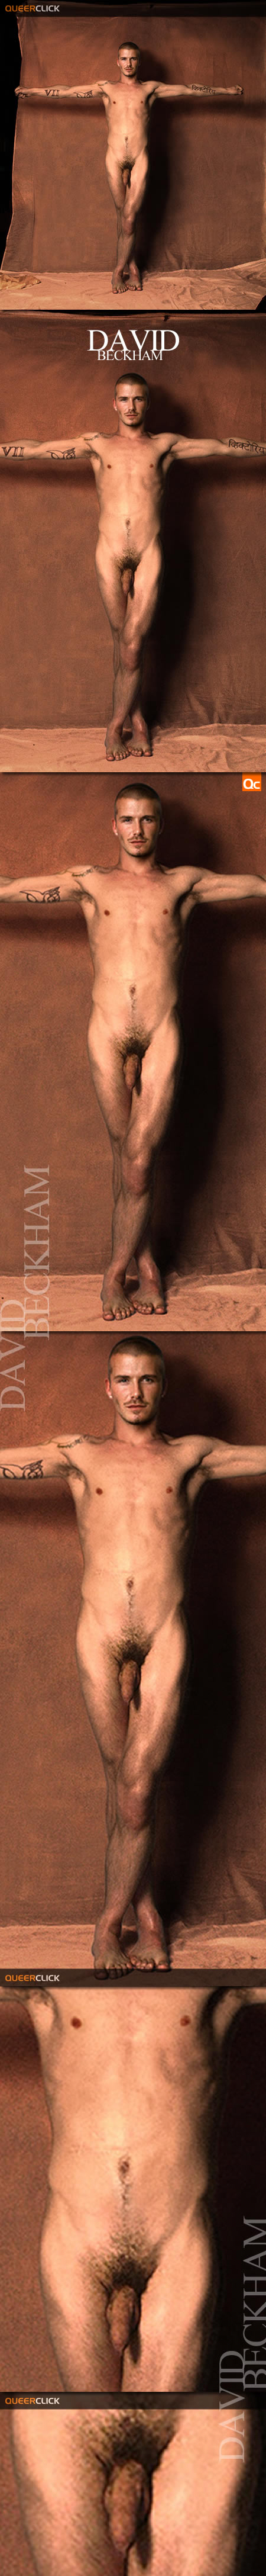 David beckham fully naked uncensored